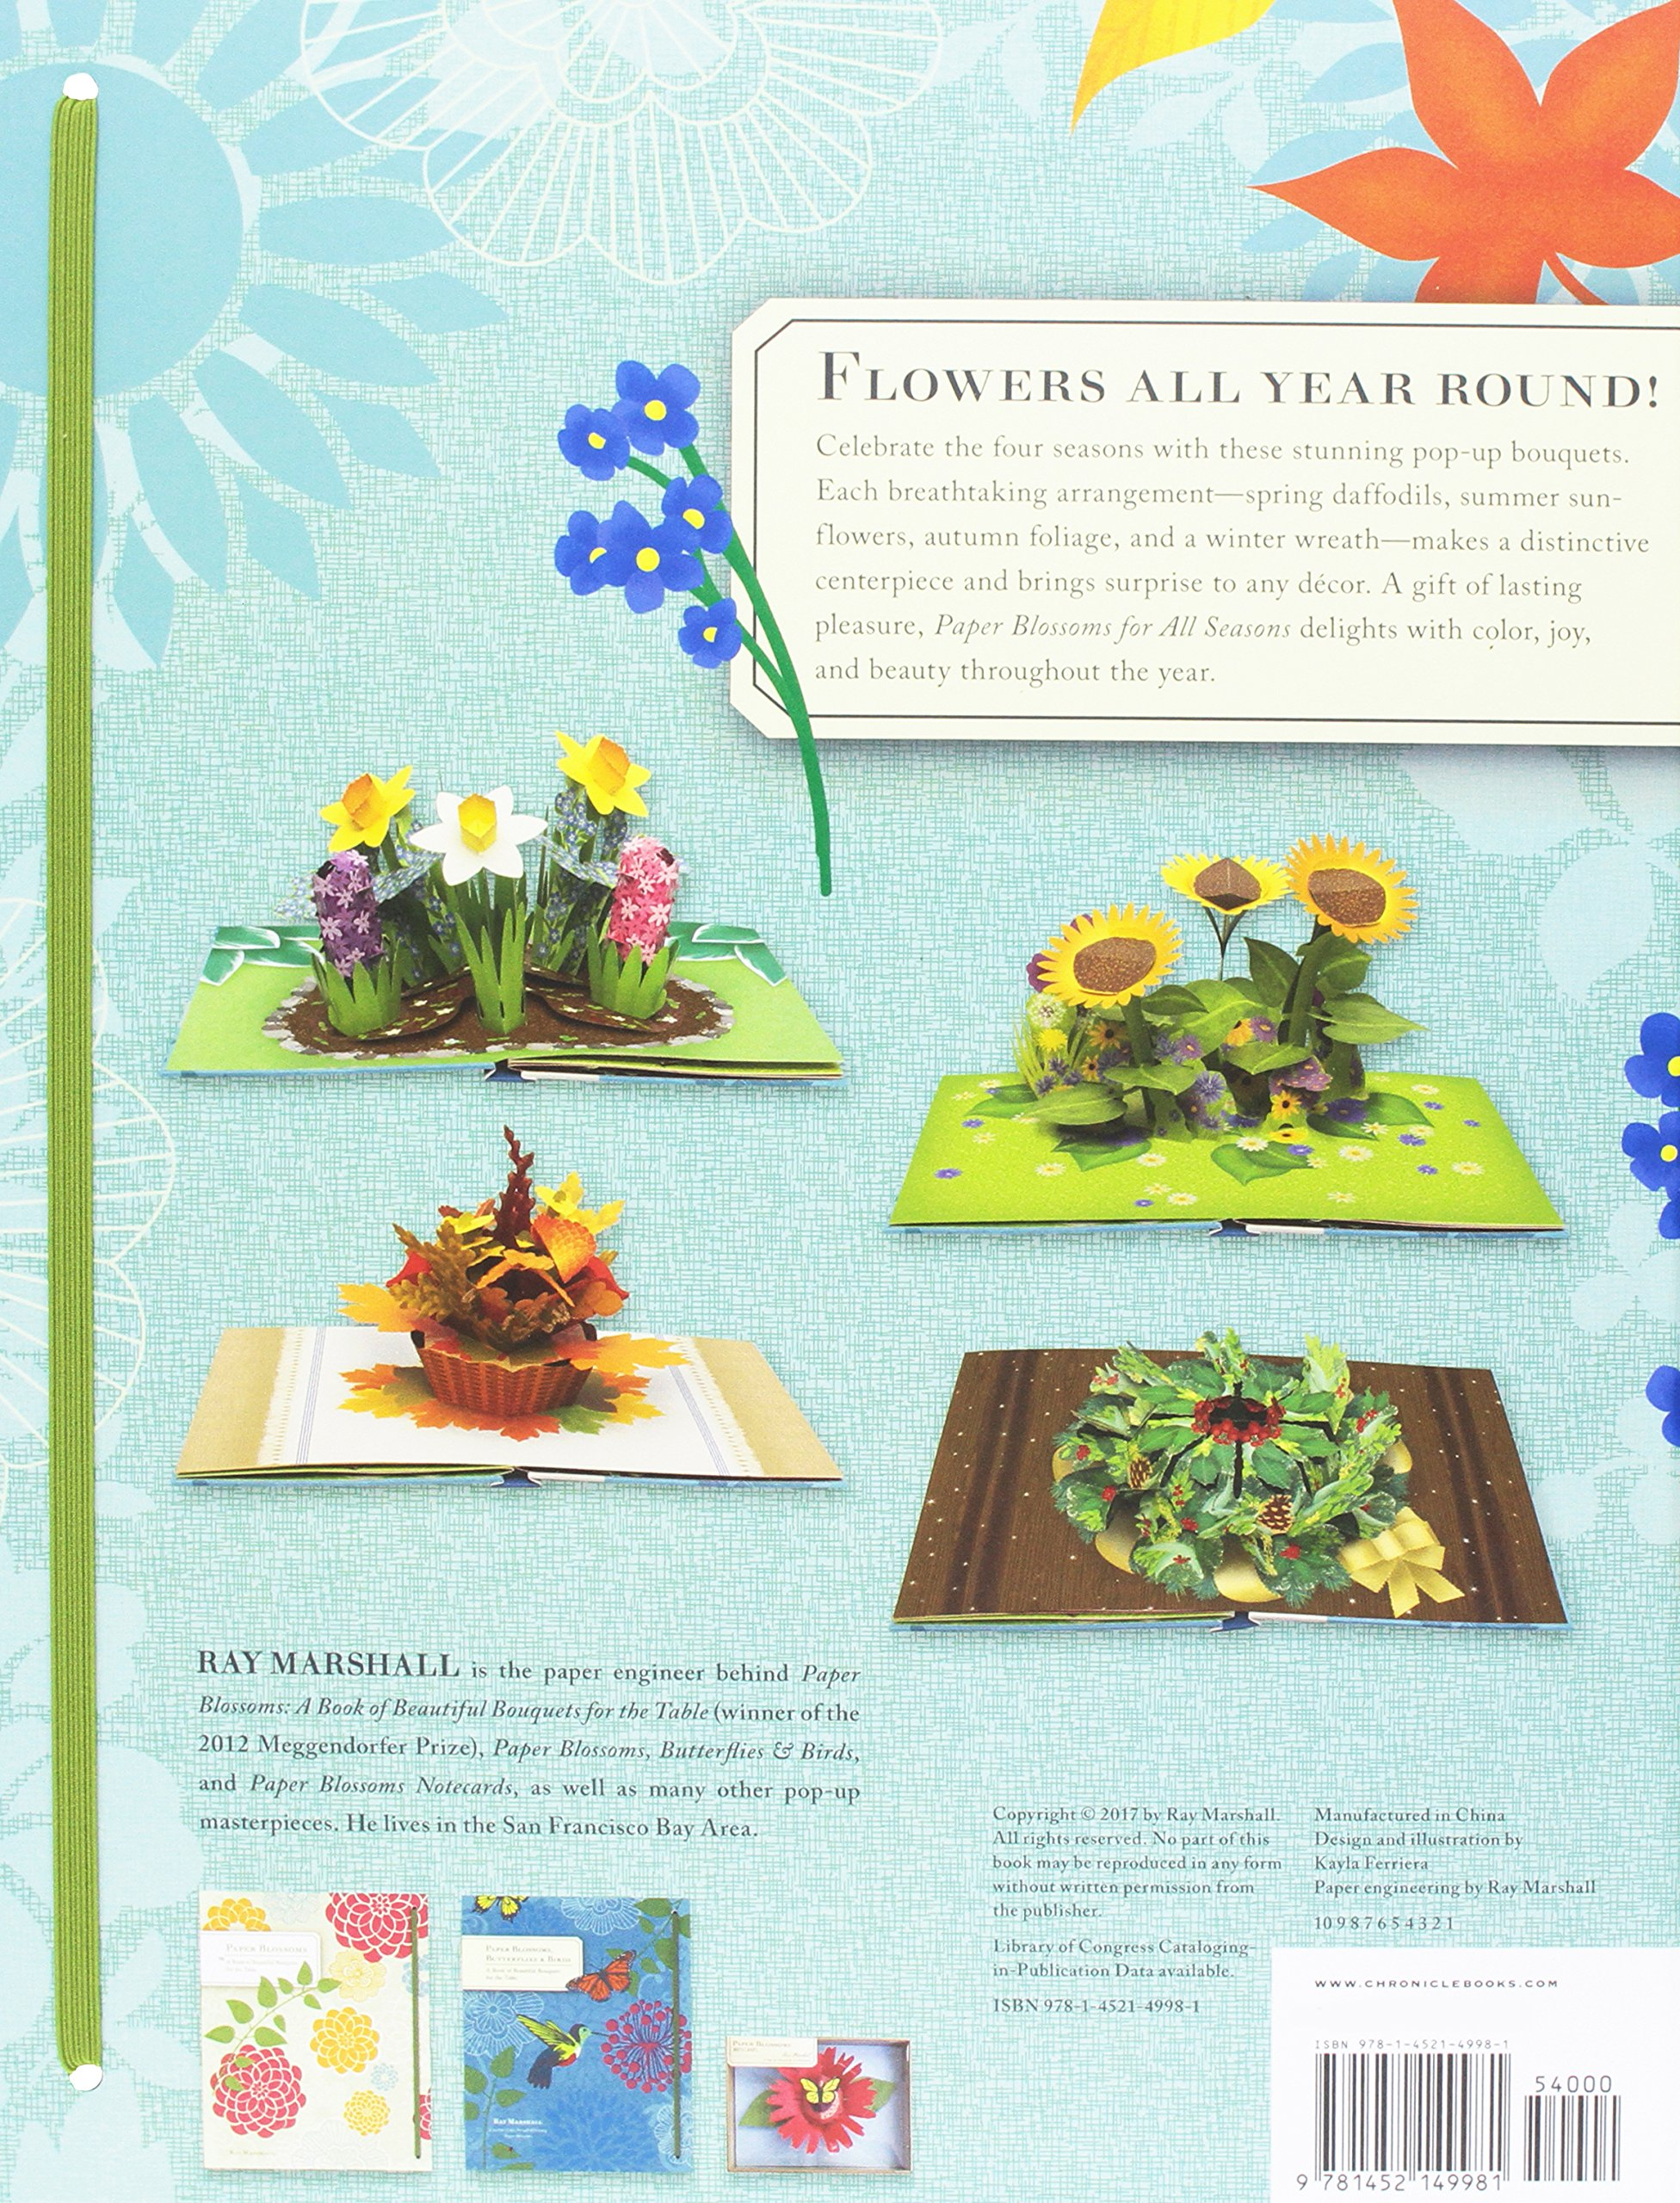 Paper Blossoms For All Seasons A Book Of Beautiful Bouquets For The